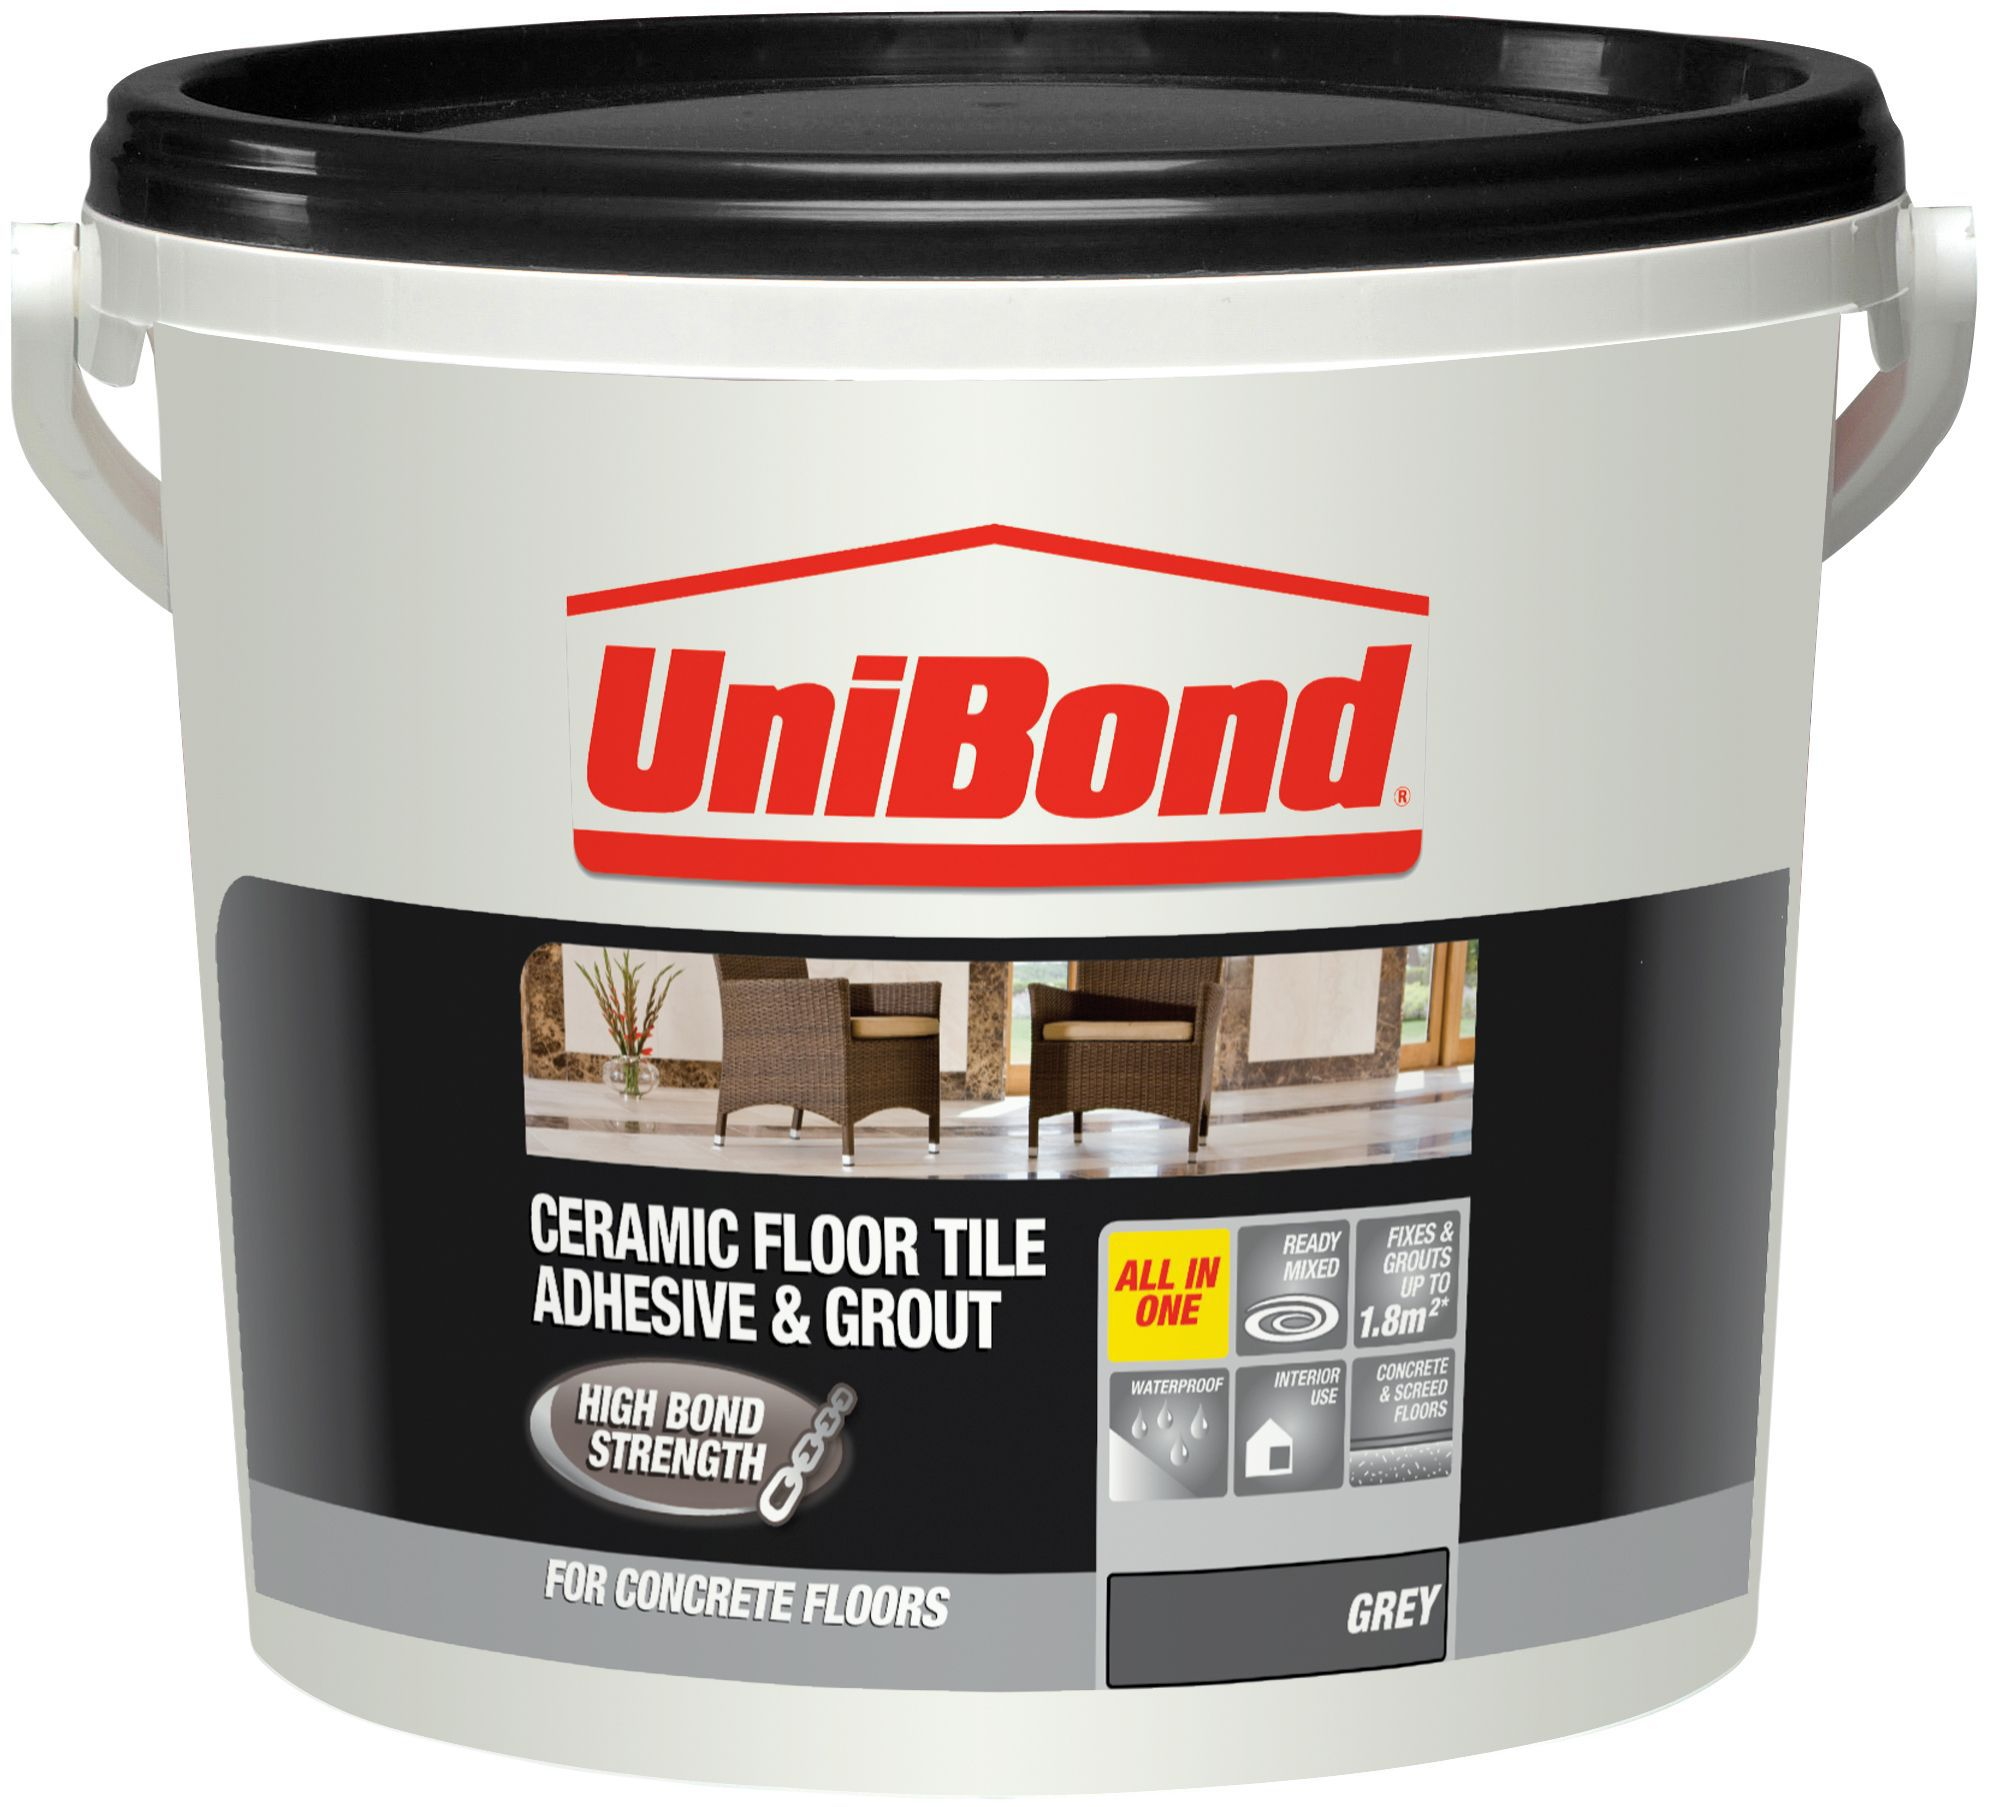 UniBond Ready to use Floor tile adhesive & grout, Grey 7 ...